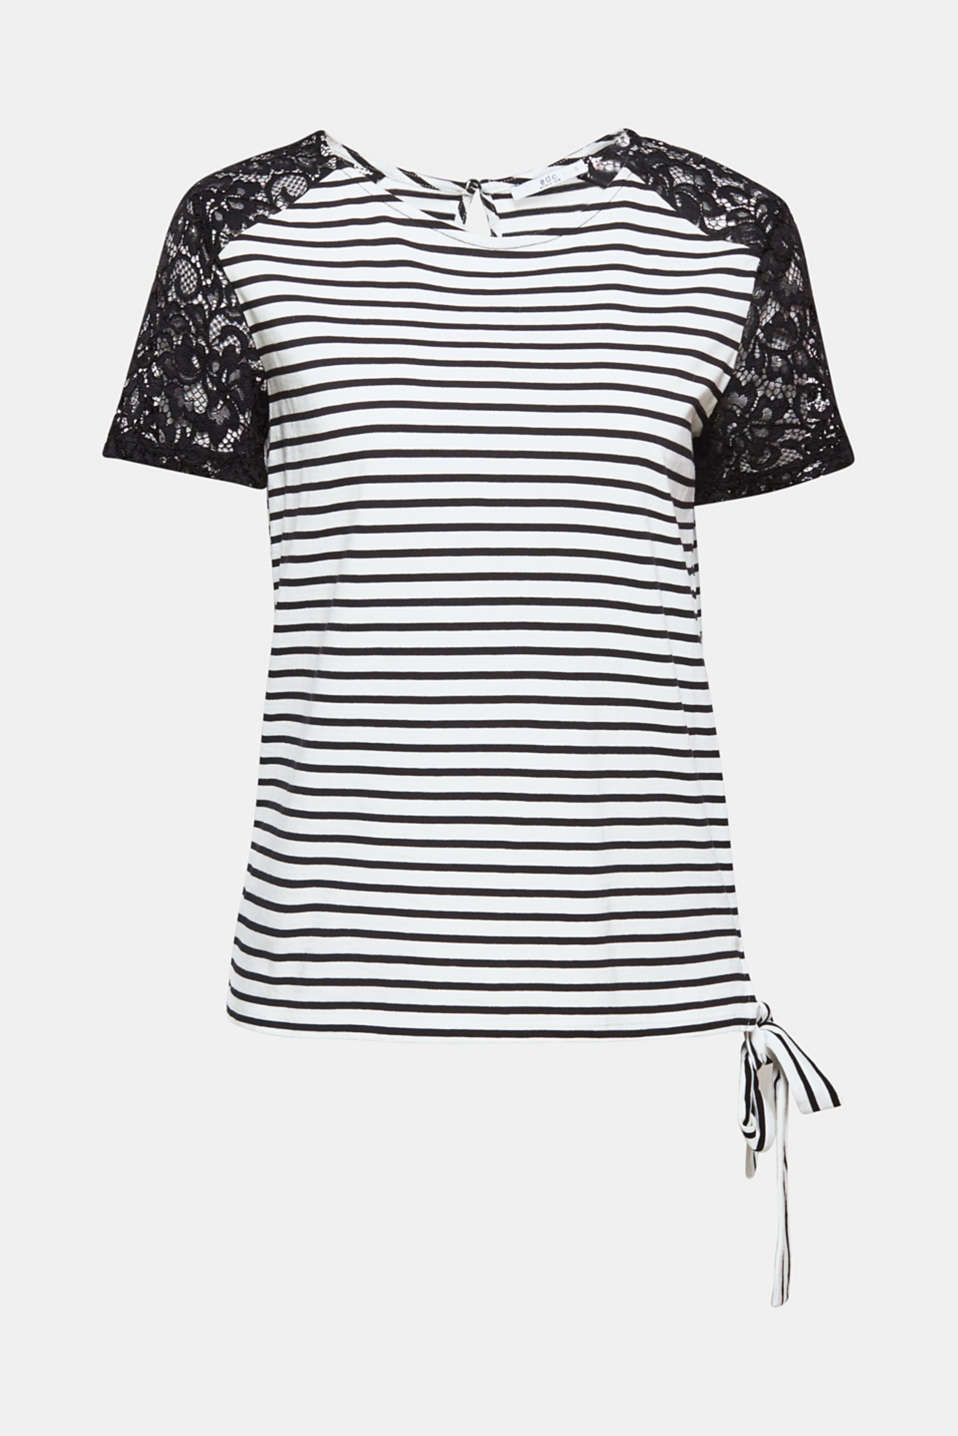 Nautical stripes meet elegant, floral lace: the mix of jersey and lace and the decorative hem trims give this T-shirt its special look.